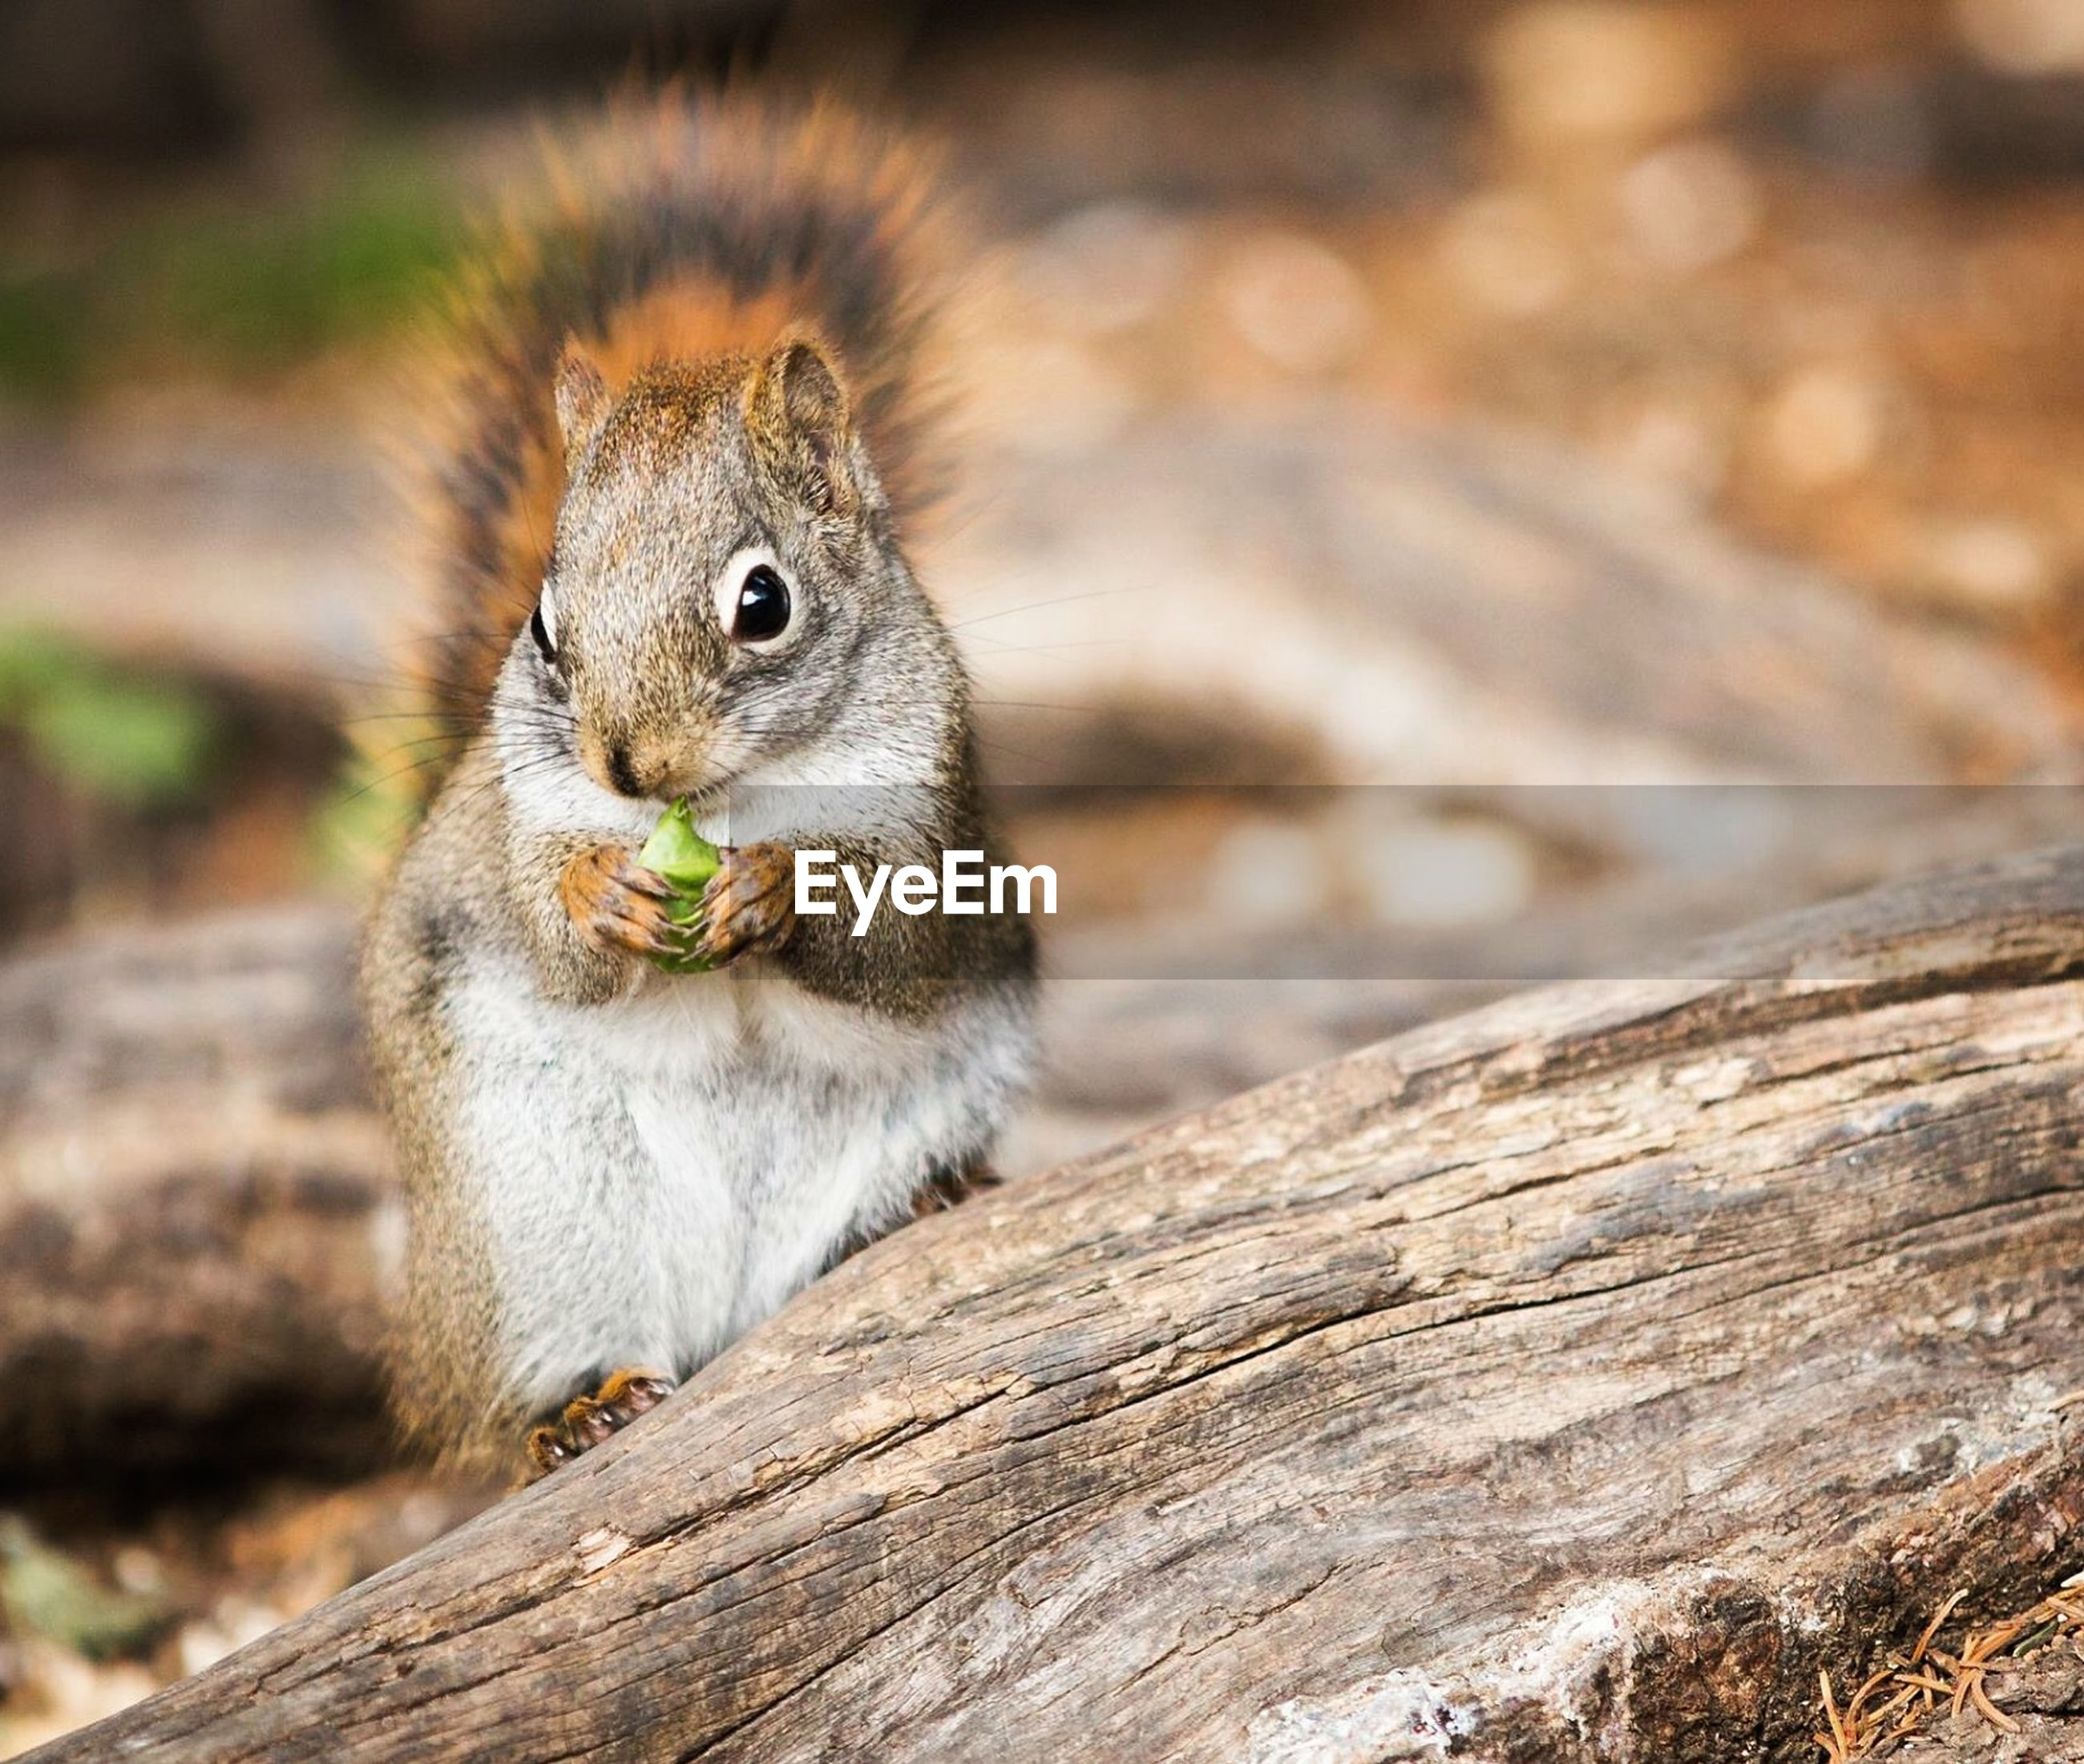 Close-up of squirrel by wood on field